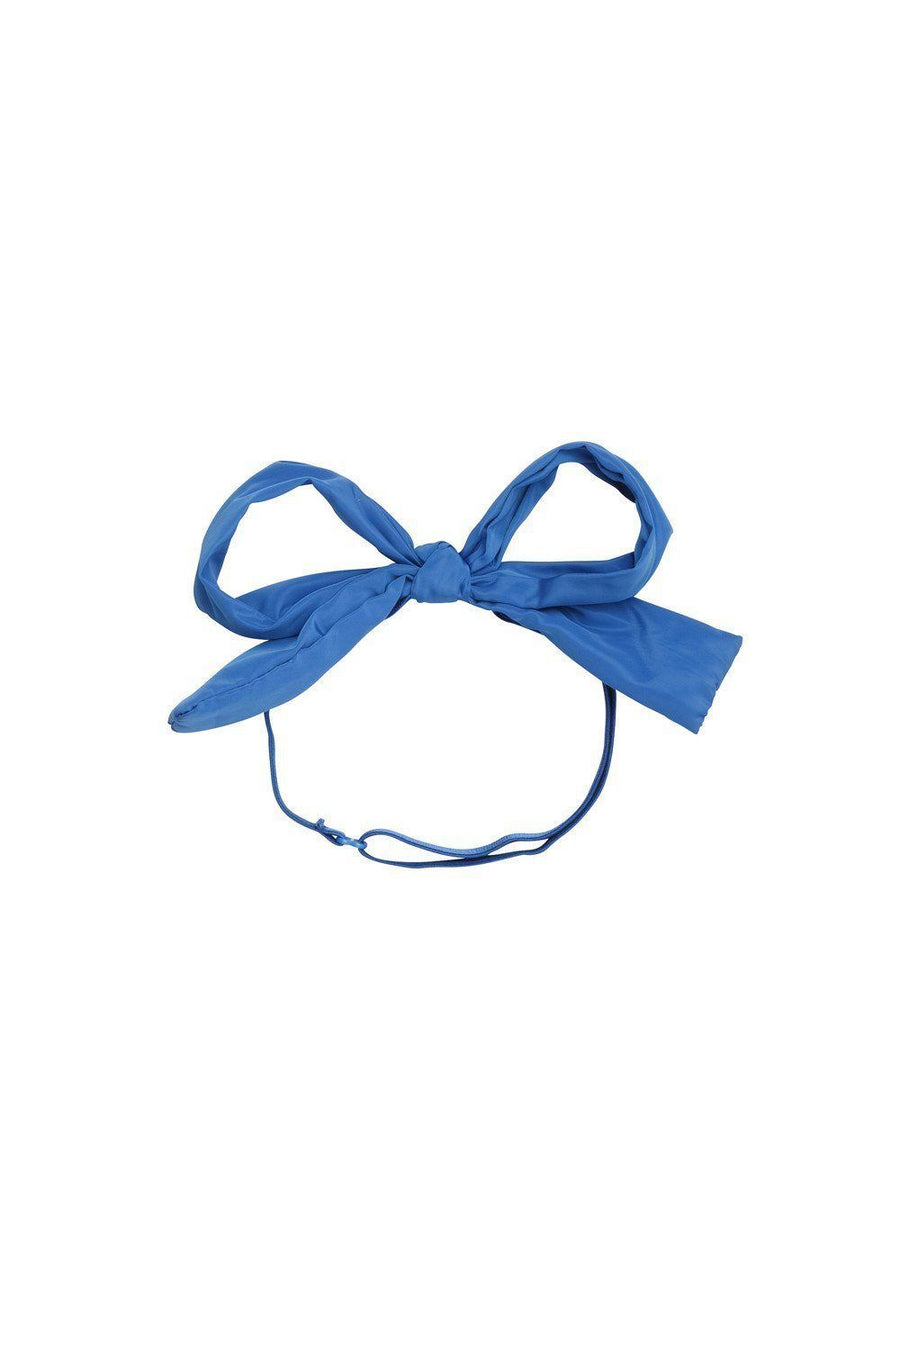 Party Bow Taffeta Wrap - Royal Blue - PROJECT 6, modest fashion